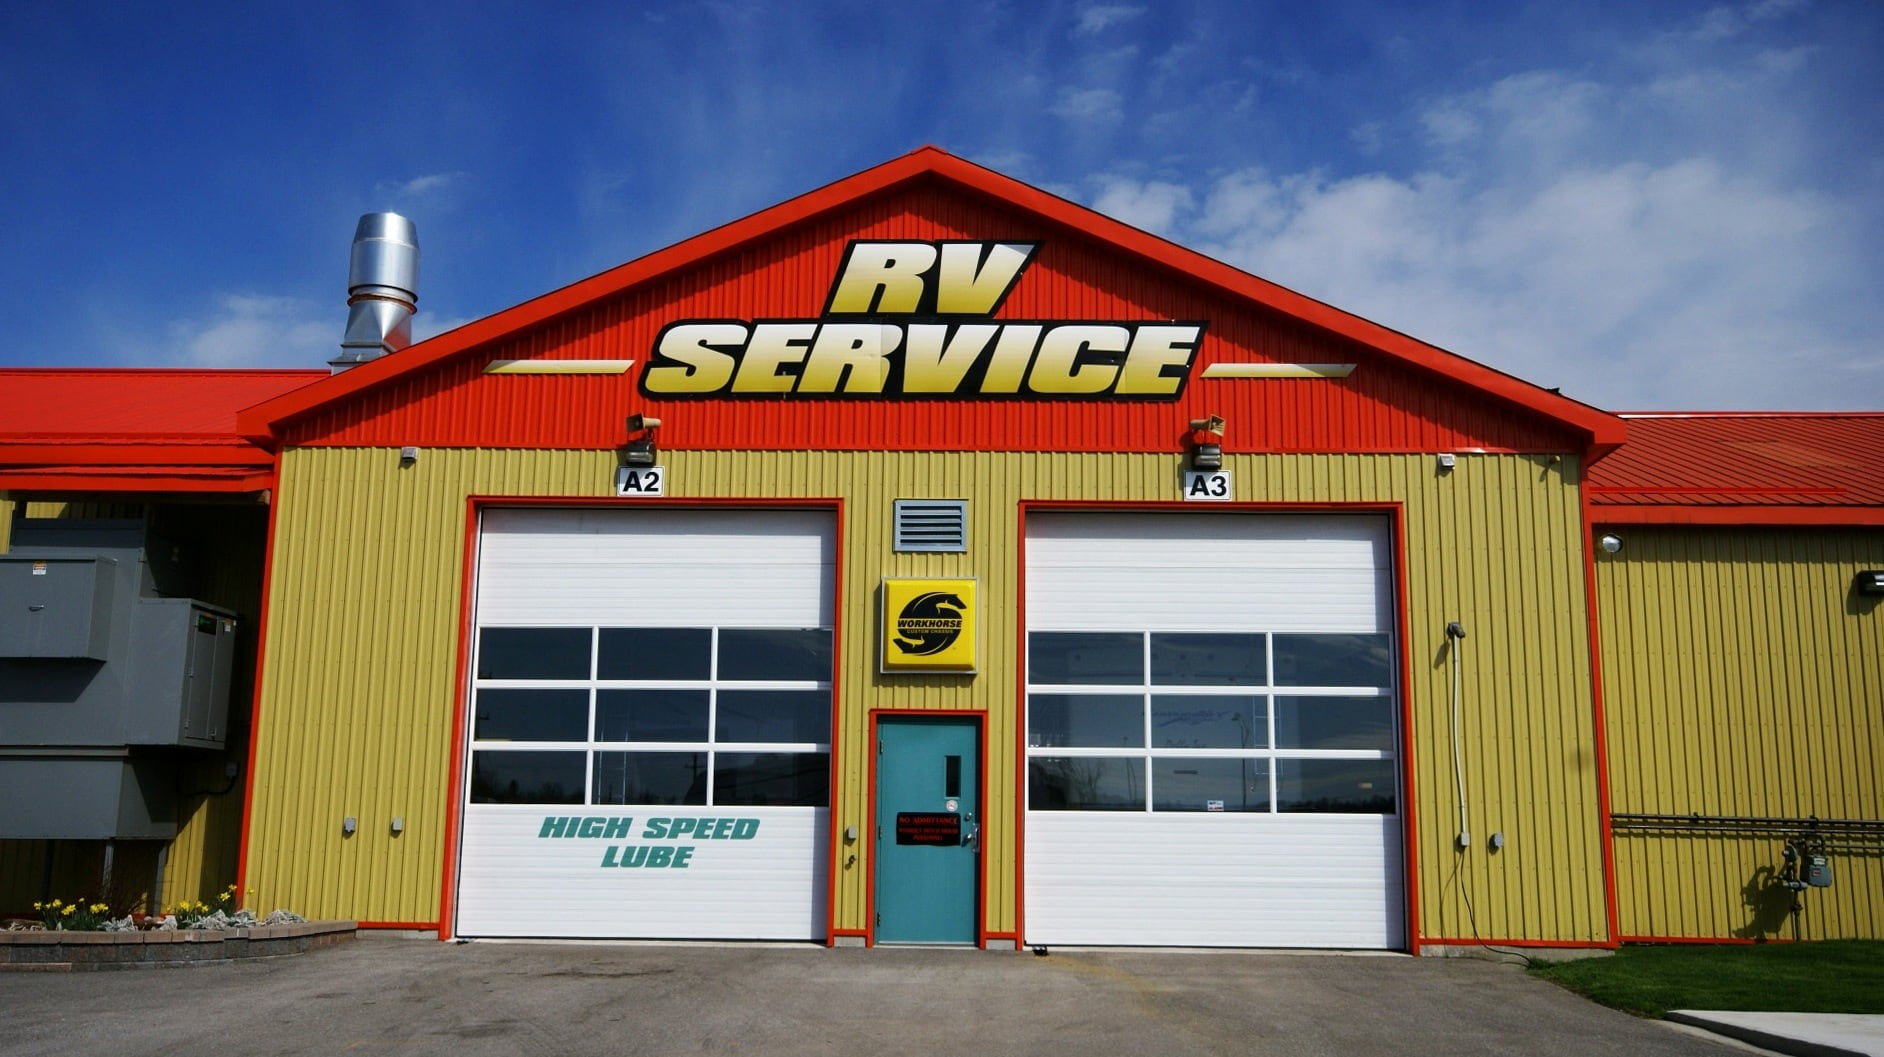 Motorhome Service Center Facility at the North of Barrie, Ontario